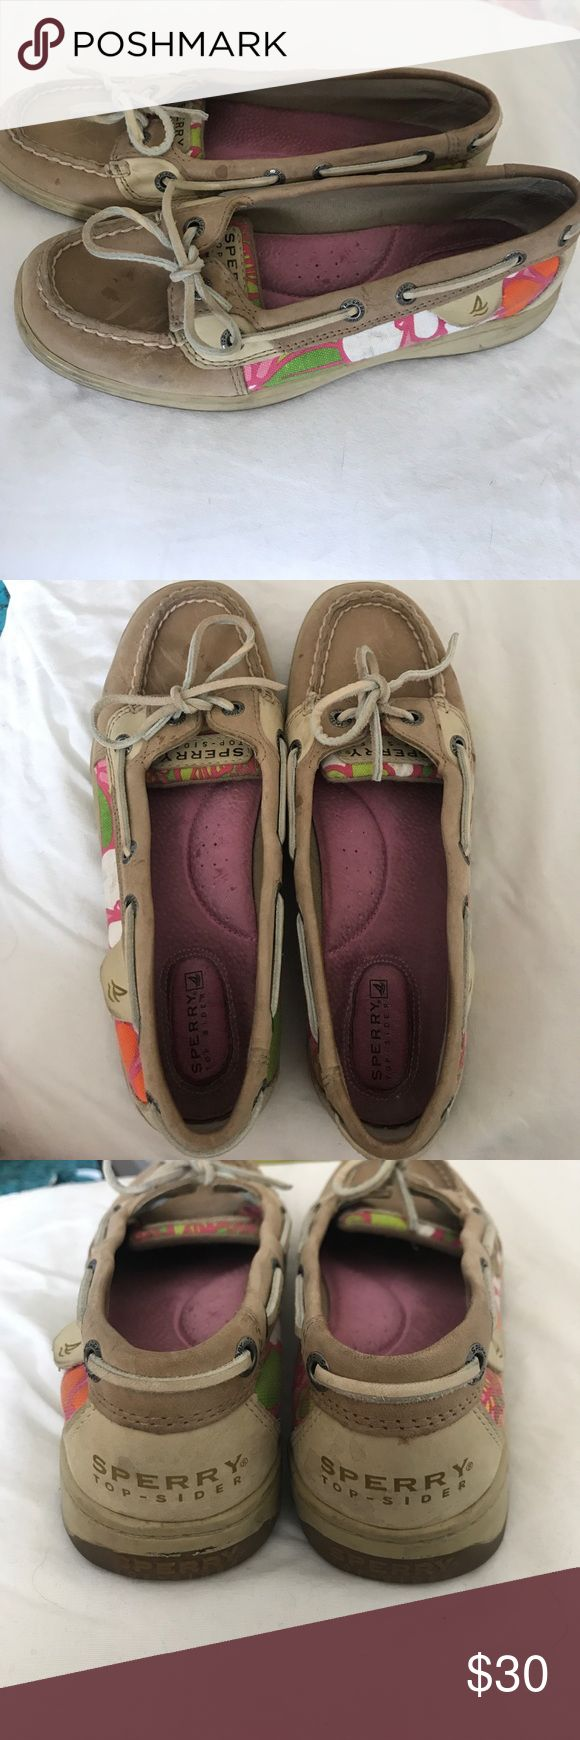 Sperry Top-Sider Angelfish Leather Boat Shoes Tan slip on leather boat shoes with tropical floral designs   Gently worn with natural markings Waterproof Size 6.5 Sperry Top-Sider Shoes